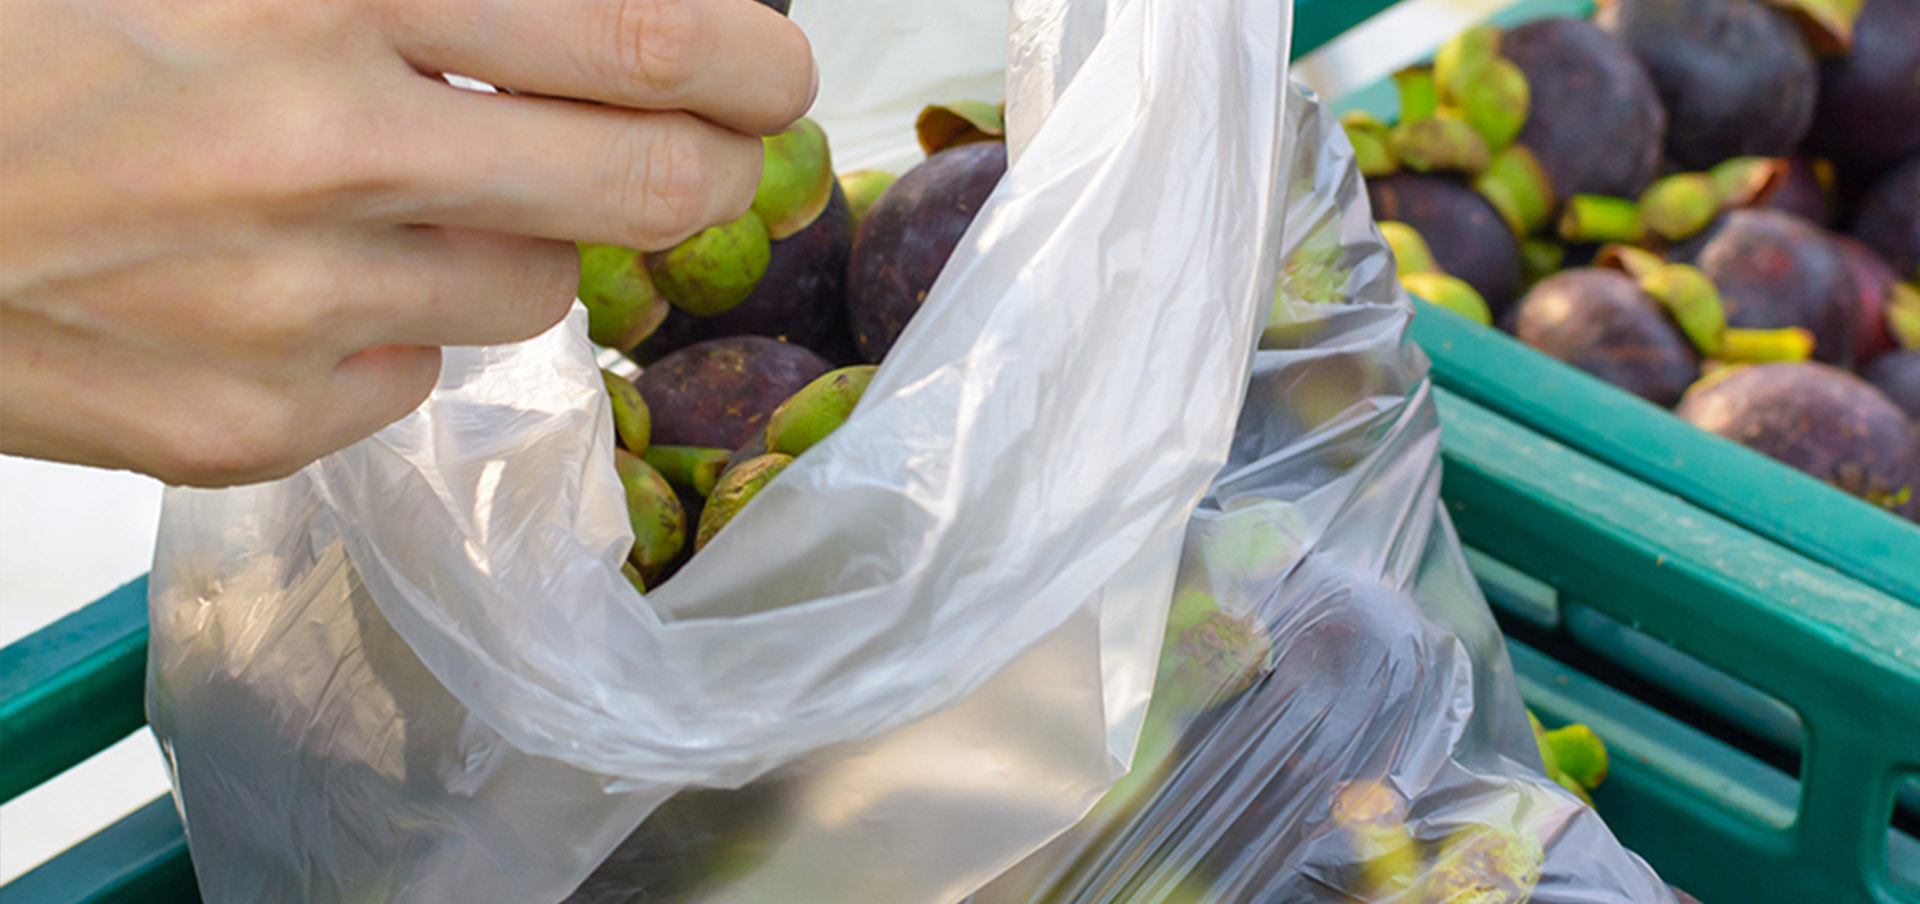 Why Choose The Biodegradable Bags of DMD Consult